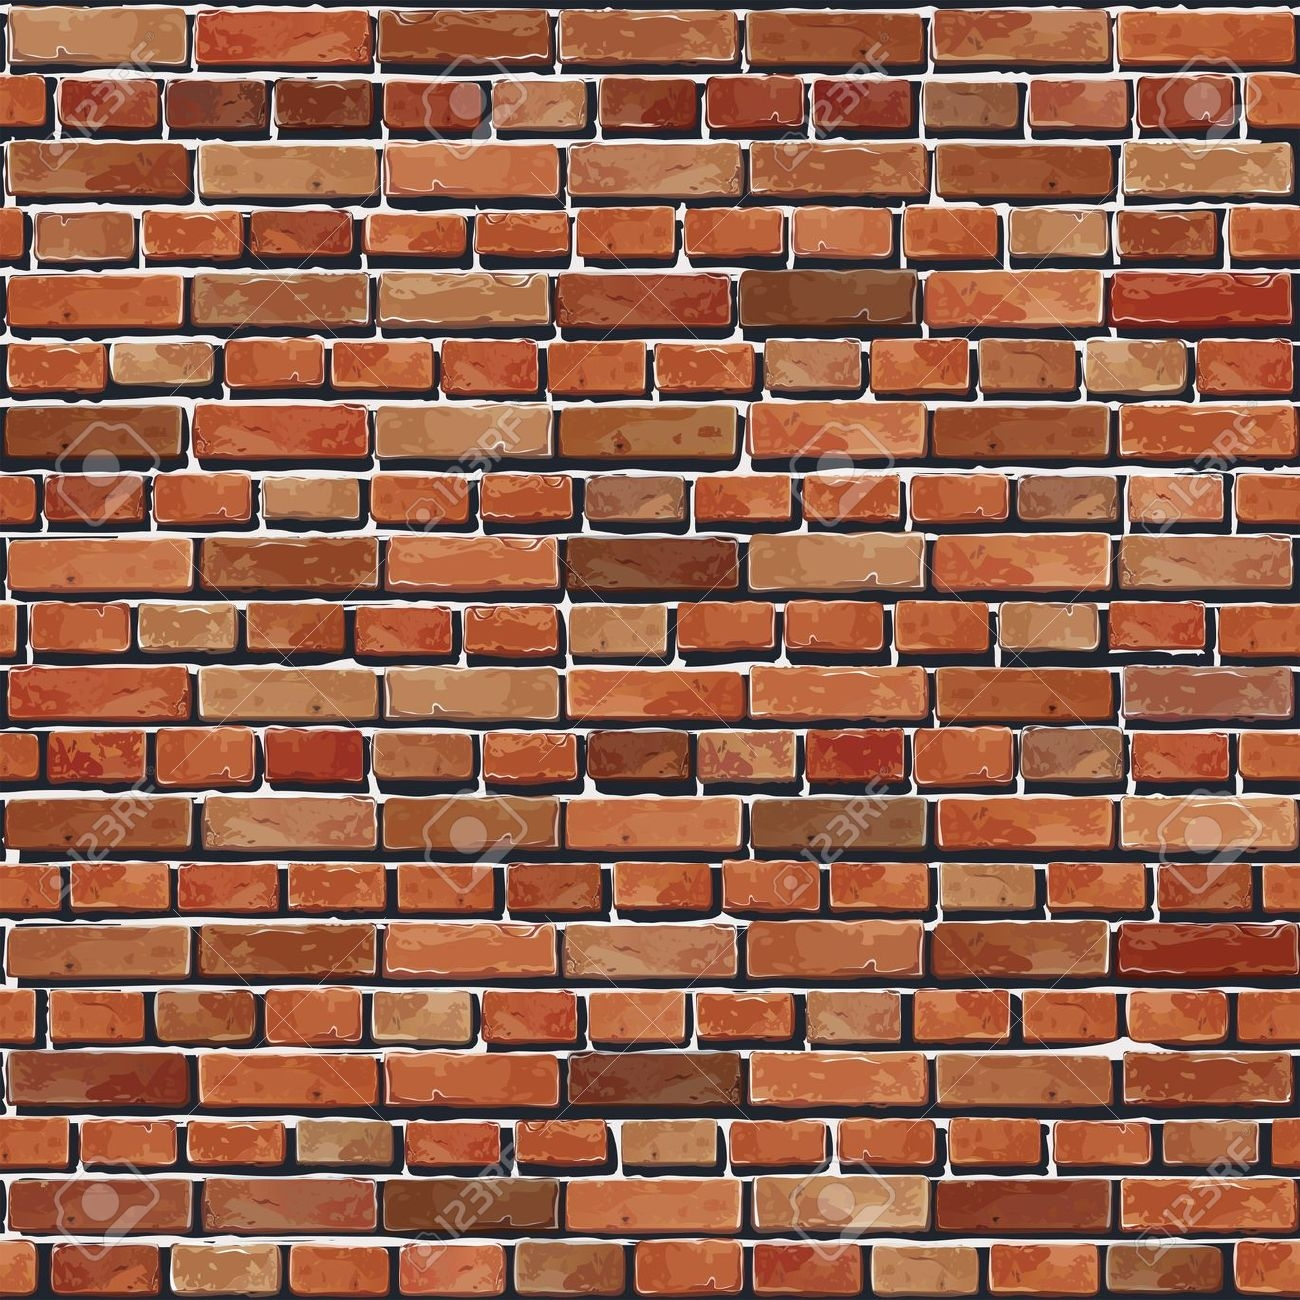 Brick clipart brick wall background Clipart Expansive Brick wall Home